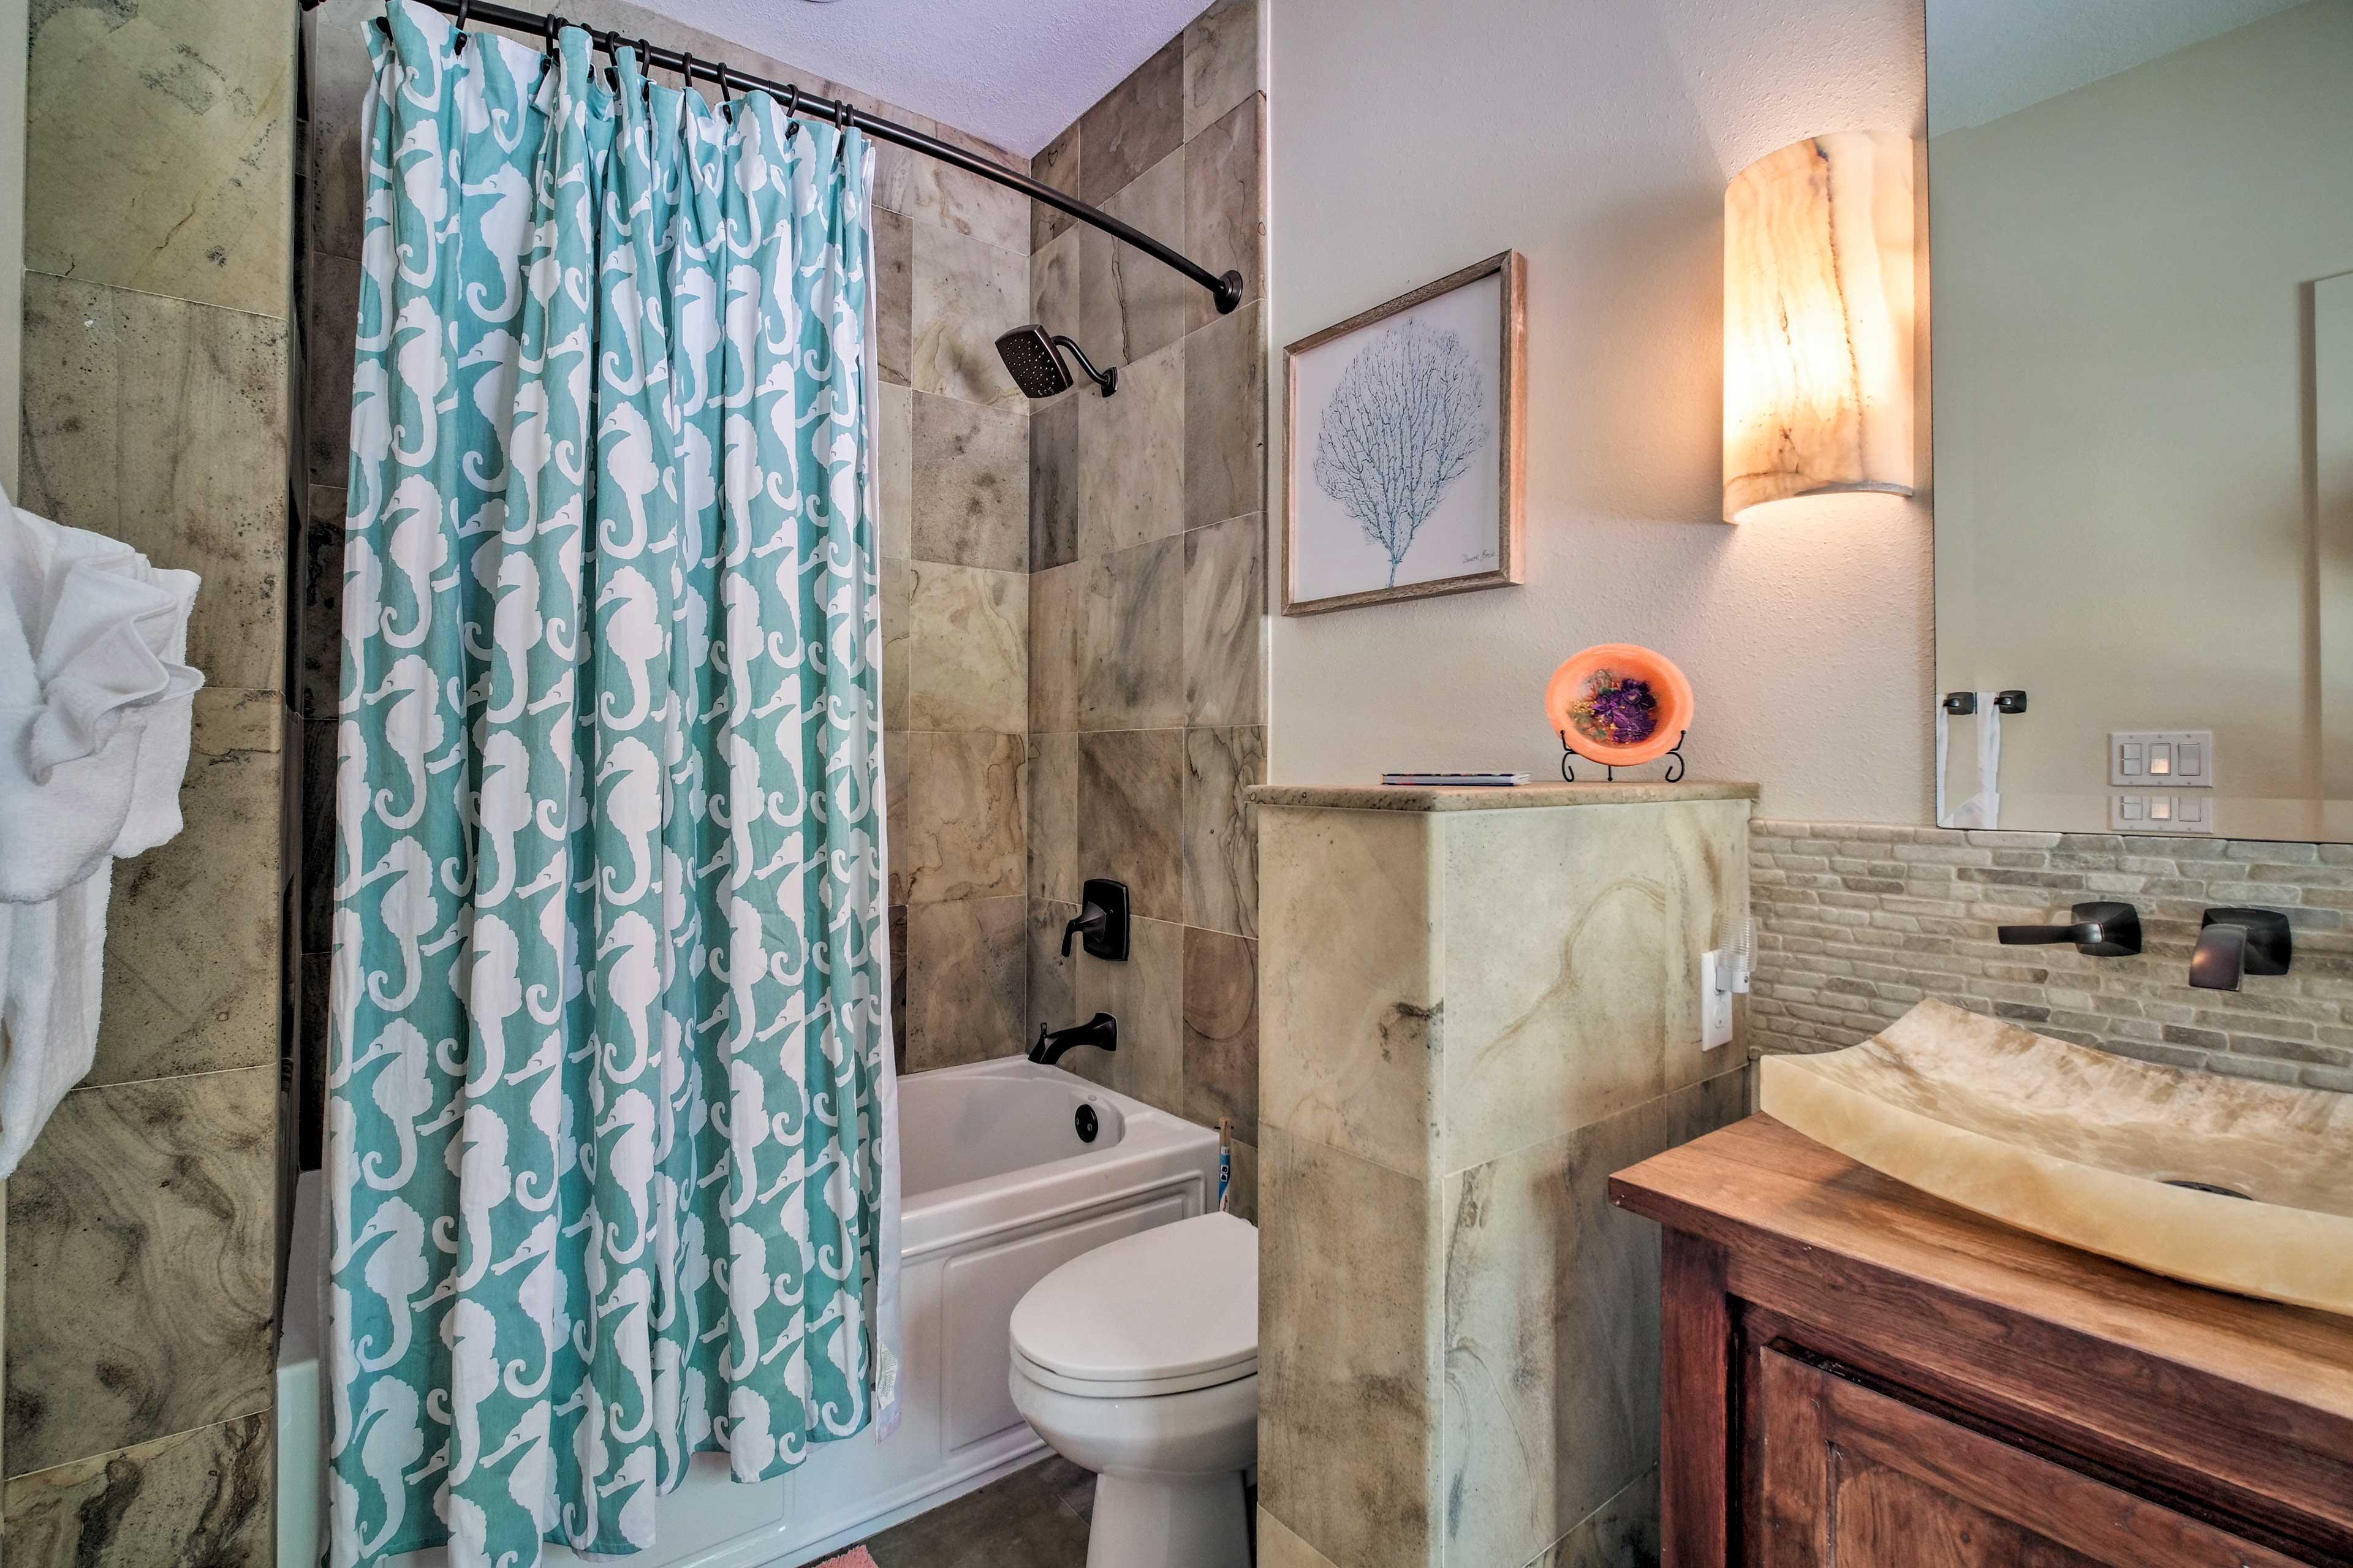 You will love rinsing off in this immaculate bathroom.